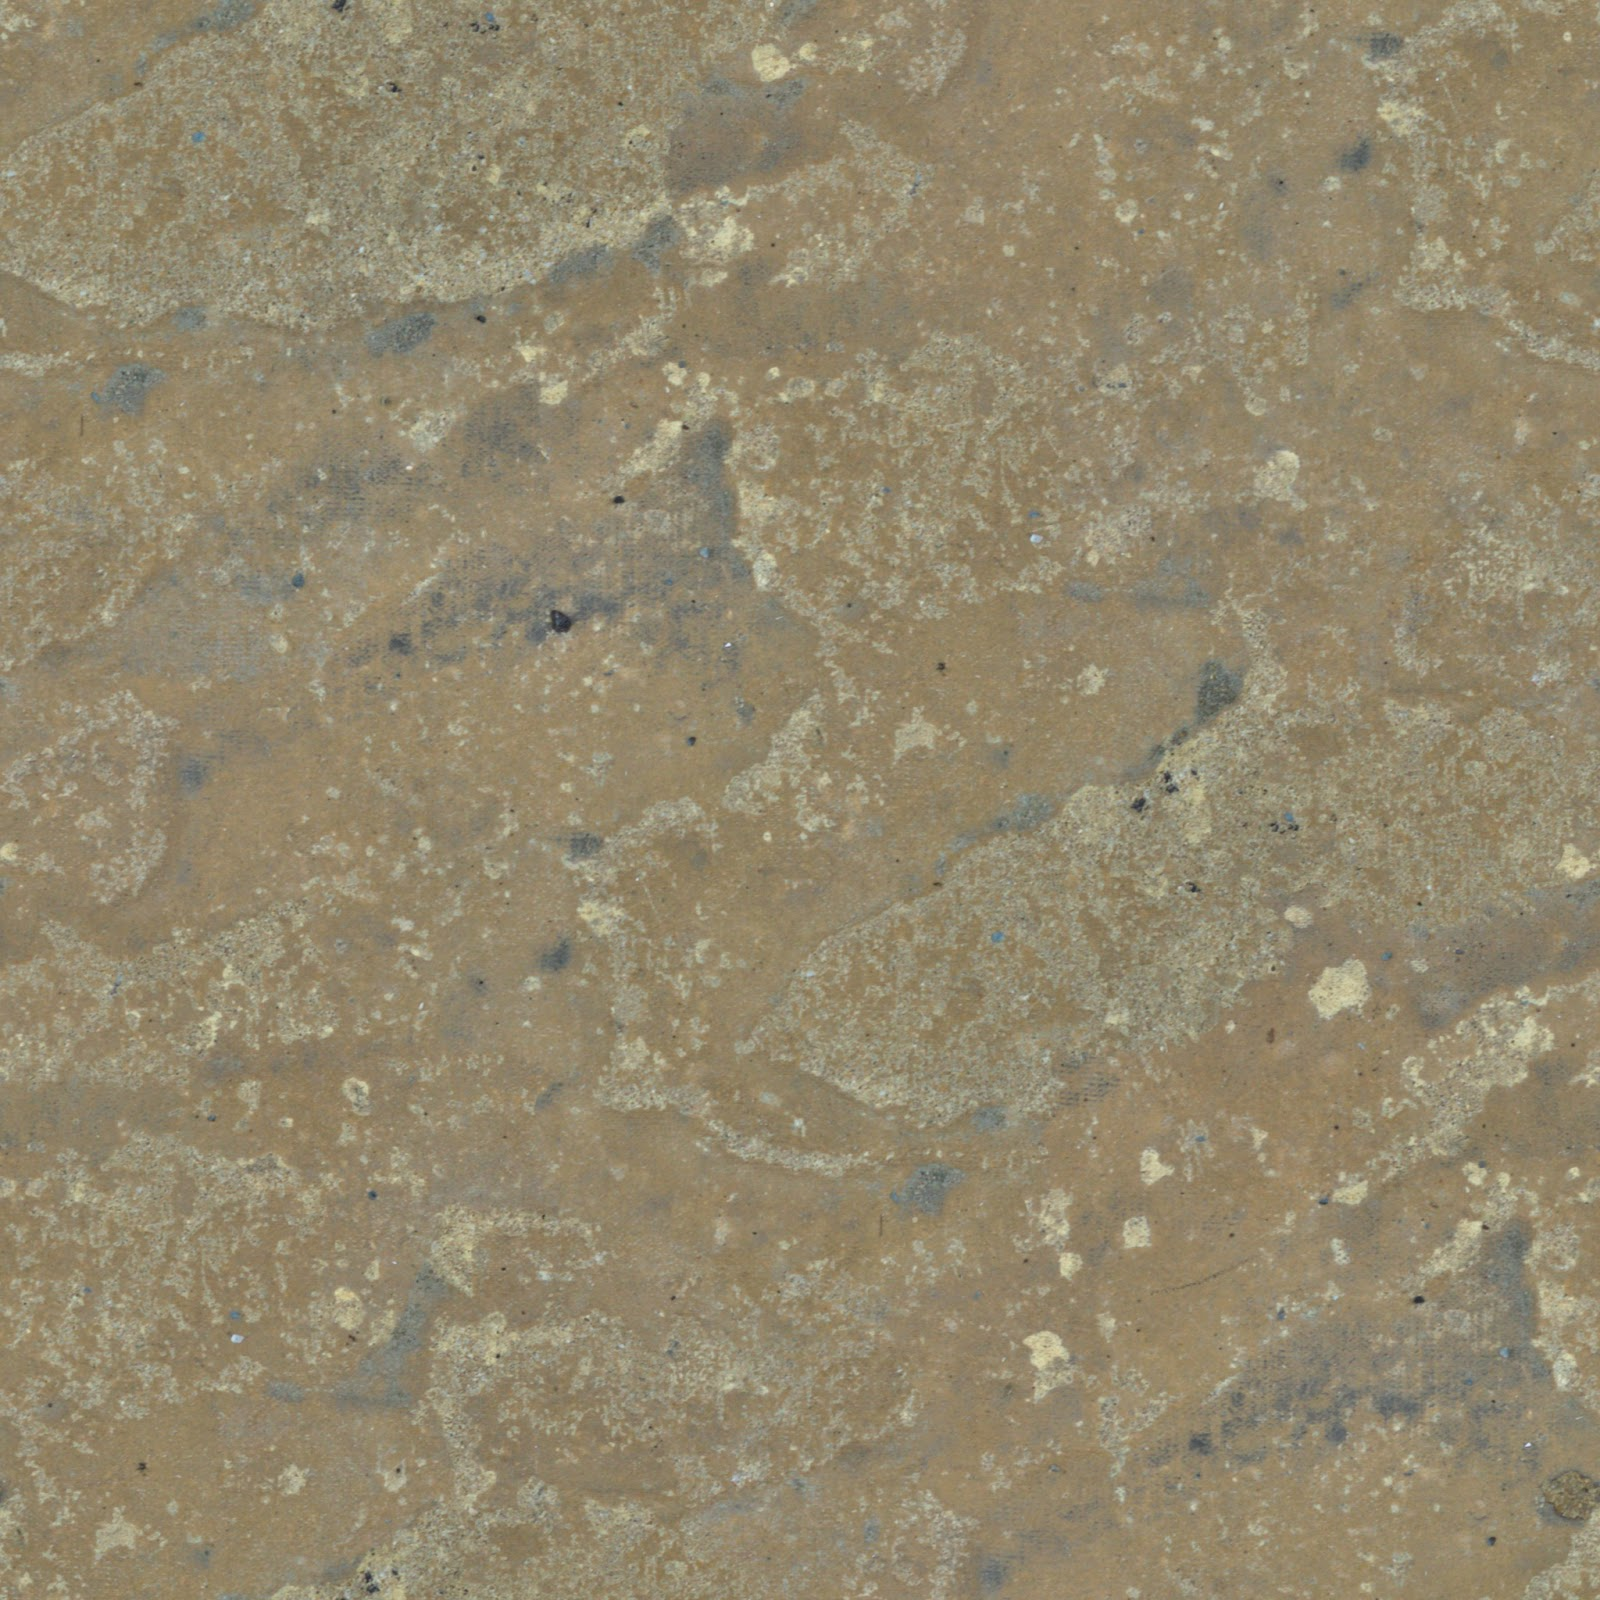 Stone slab feb_2015 seamless texture 2048x2048